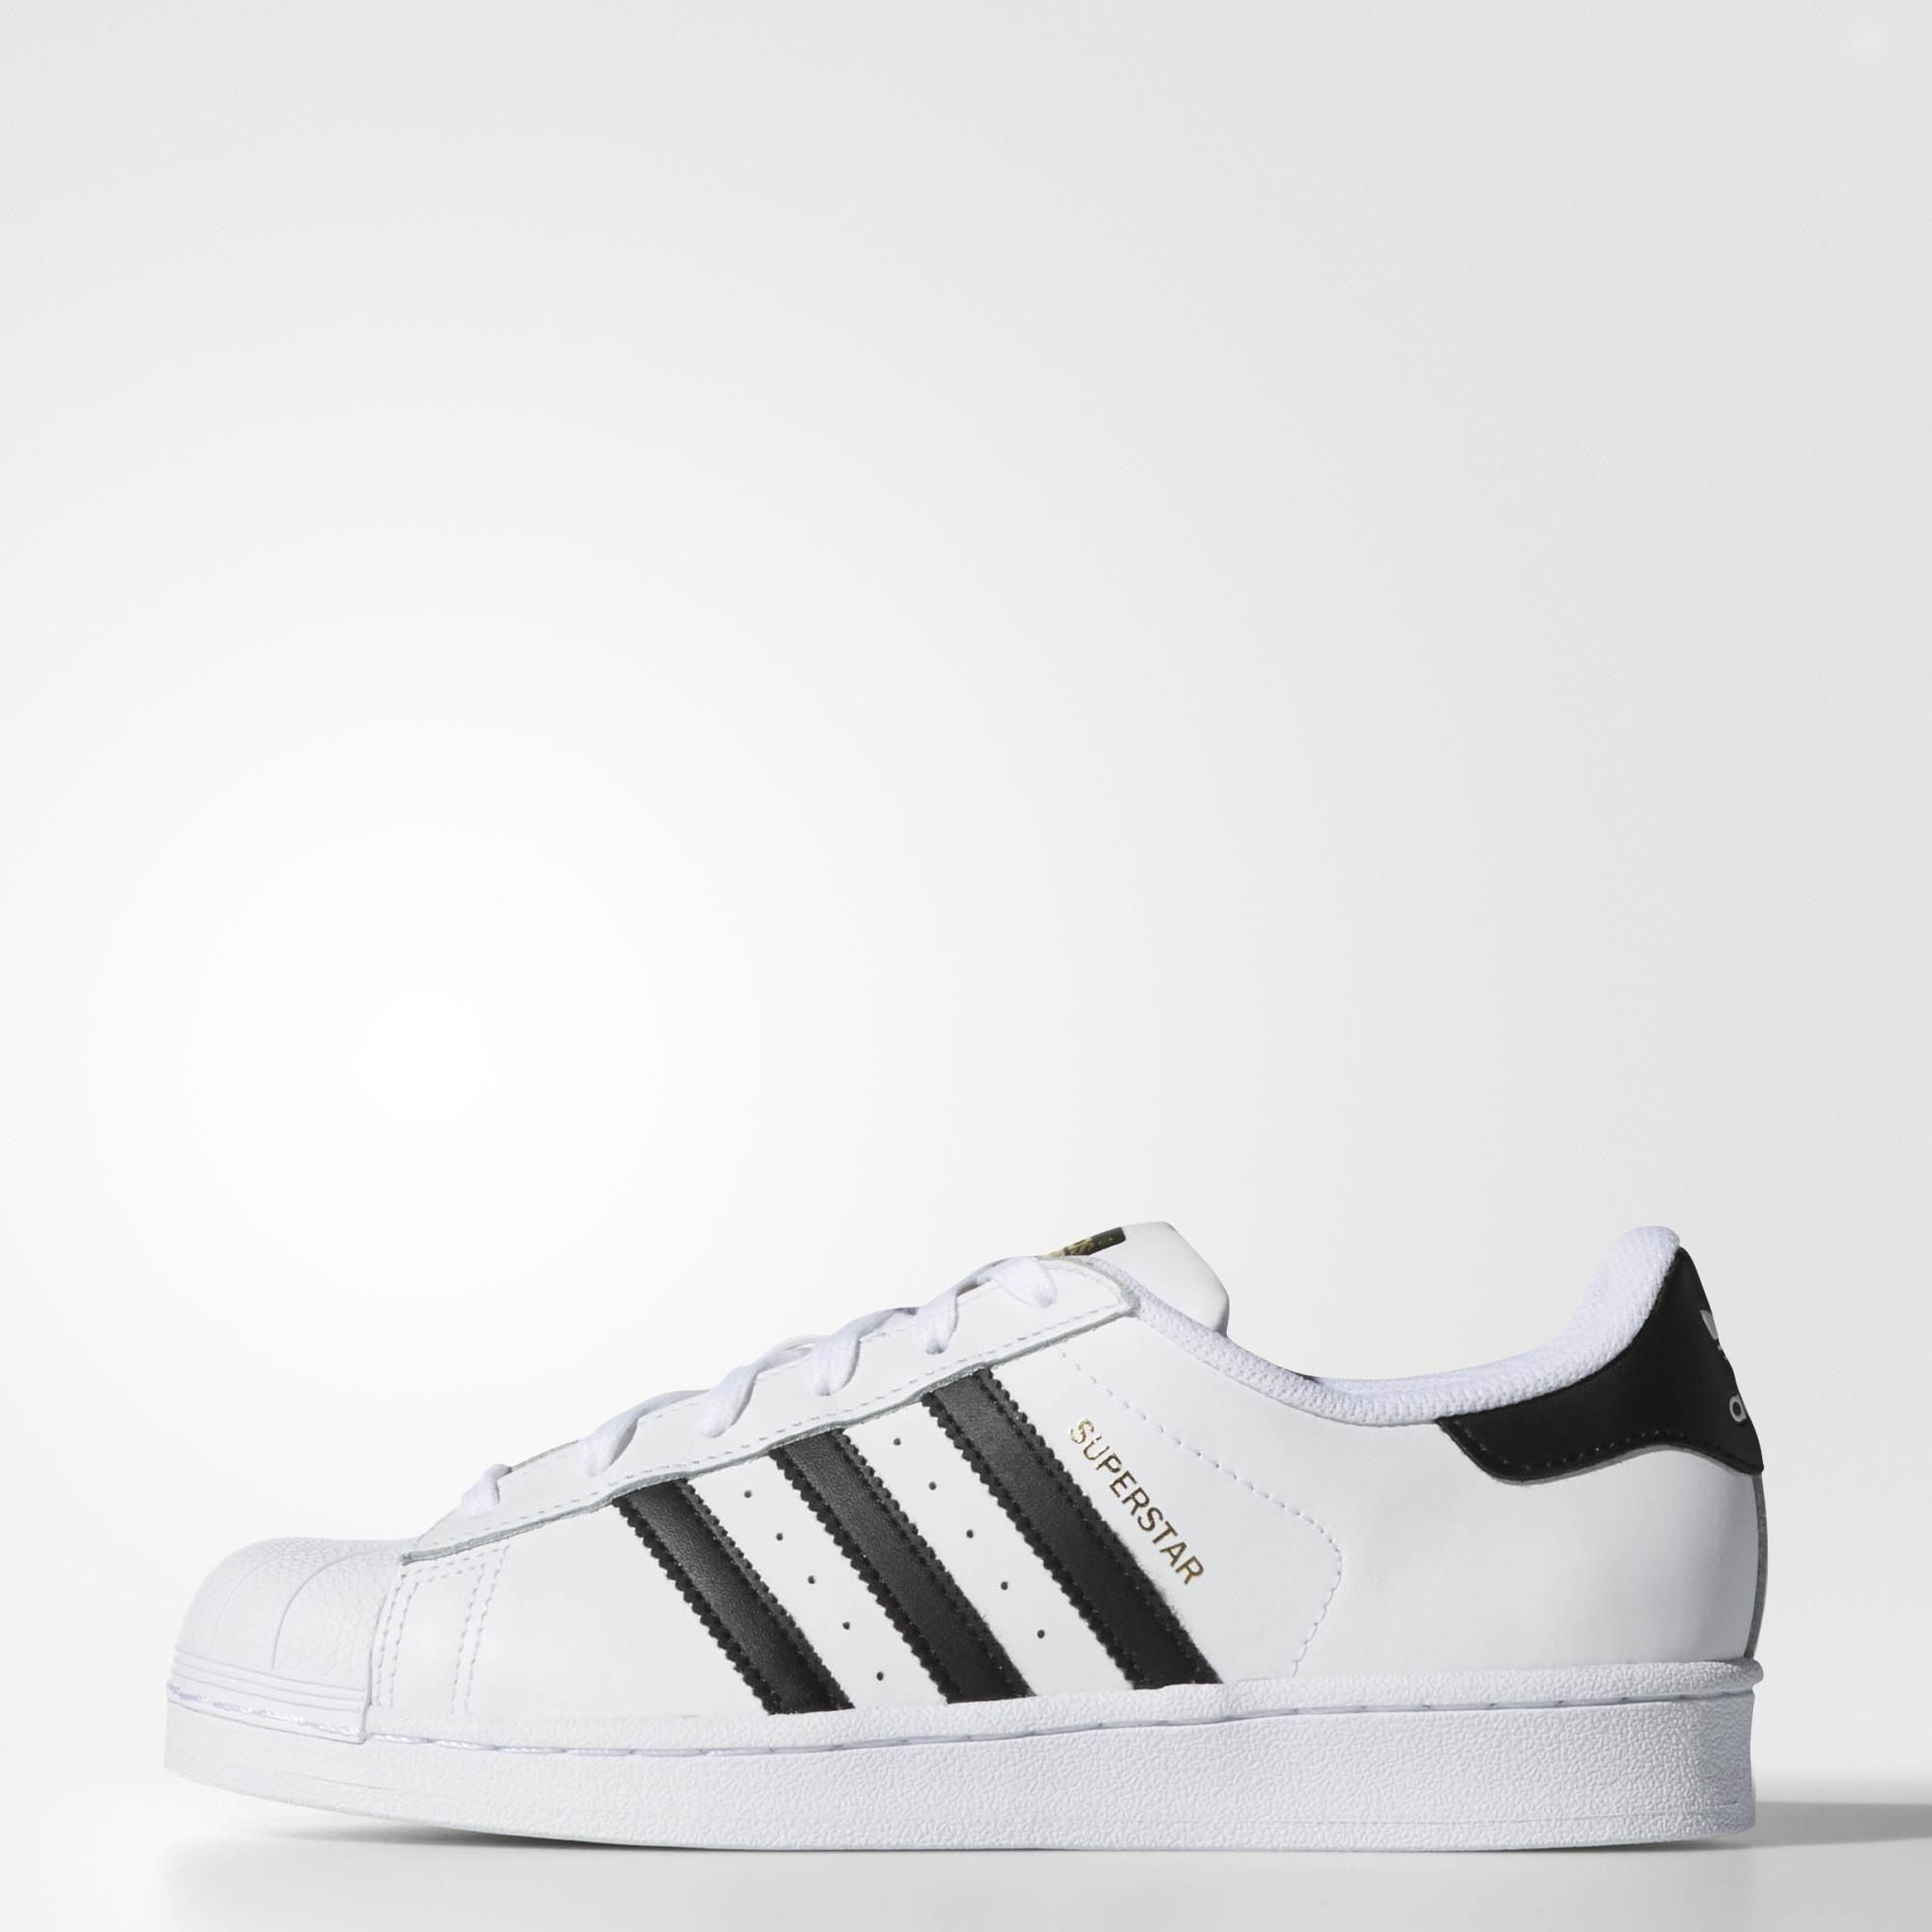 adidas Superstar Foundation shoes white